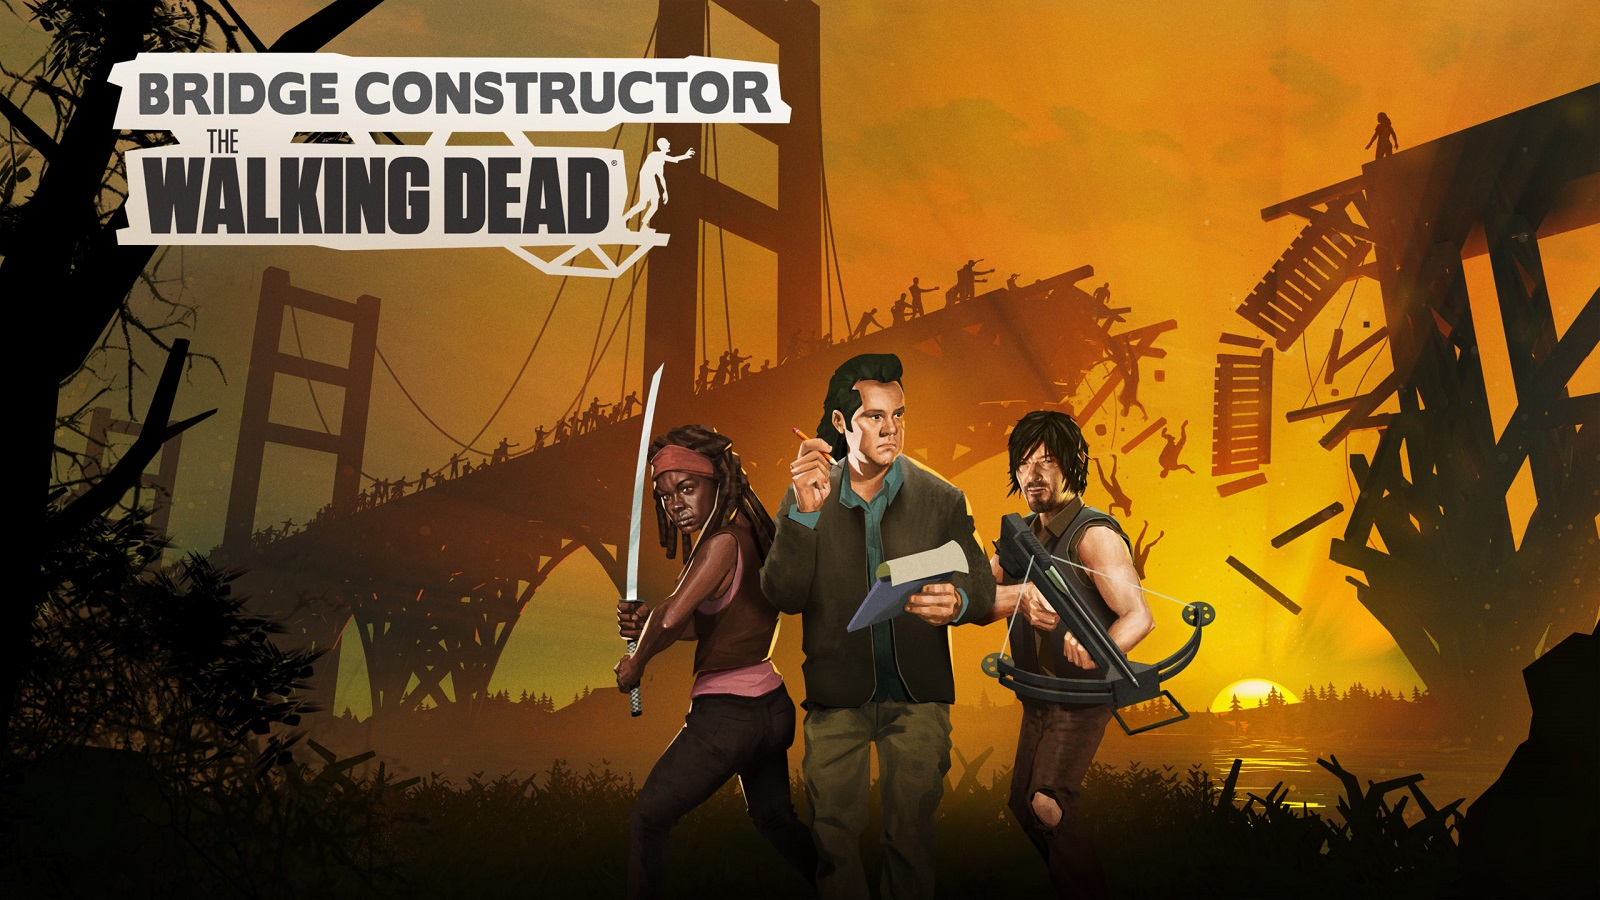 Bridge Constructor: The Walking Dead выйдет 19 ноября, но не на PlayStation 5